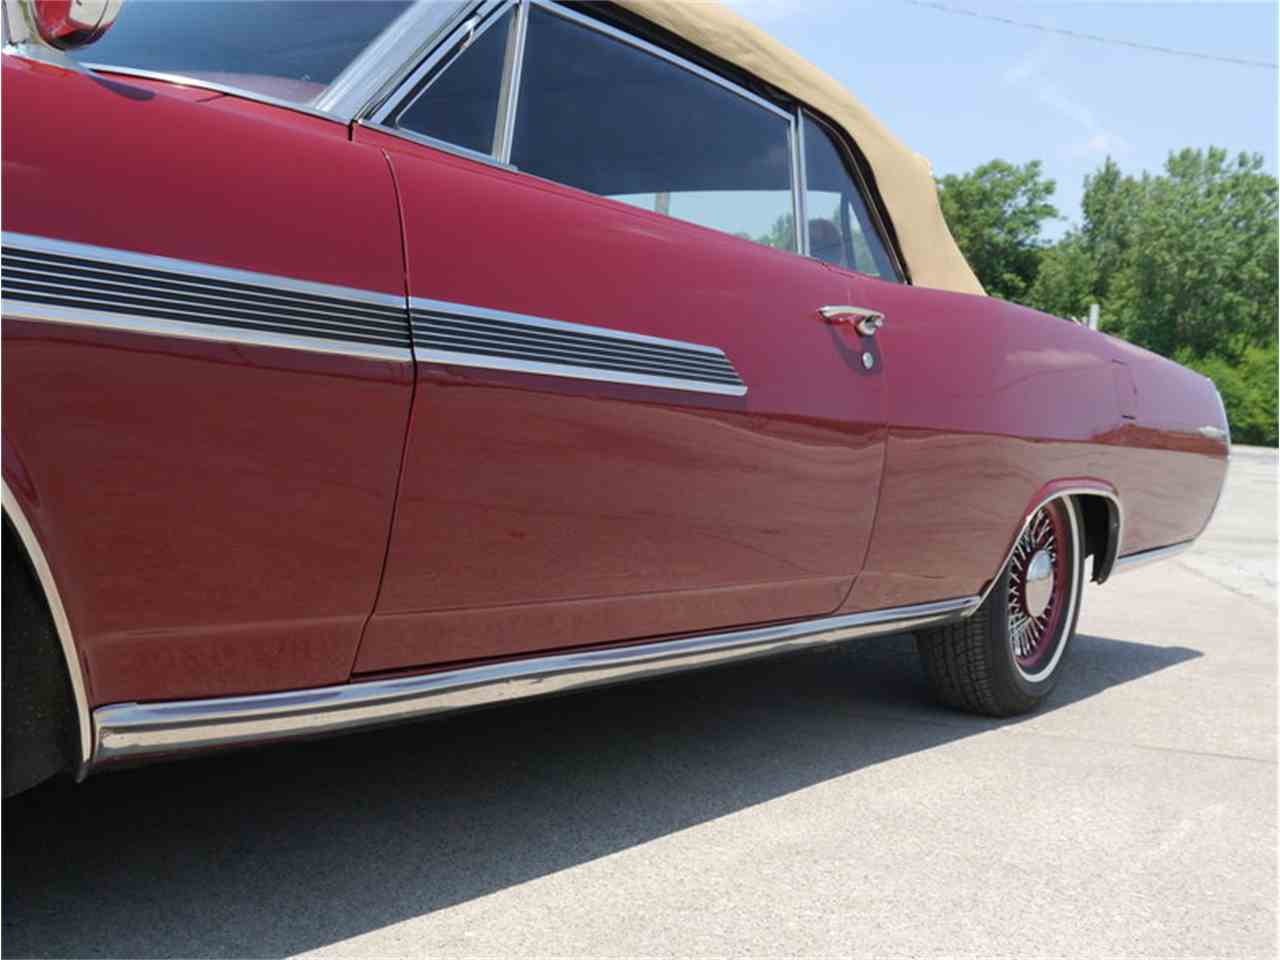 Large Picture of 1963 Pontiac Bonneville located in Illinois Offered by Midwest Car Exchange - LAZG